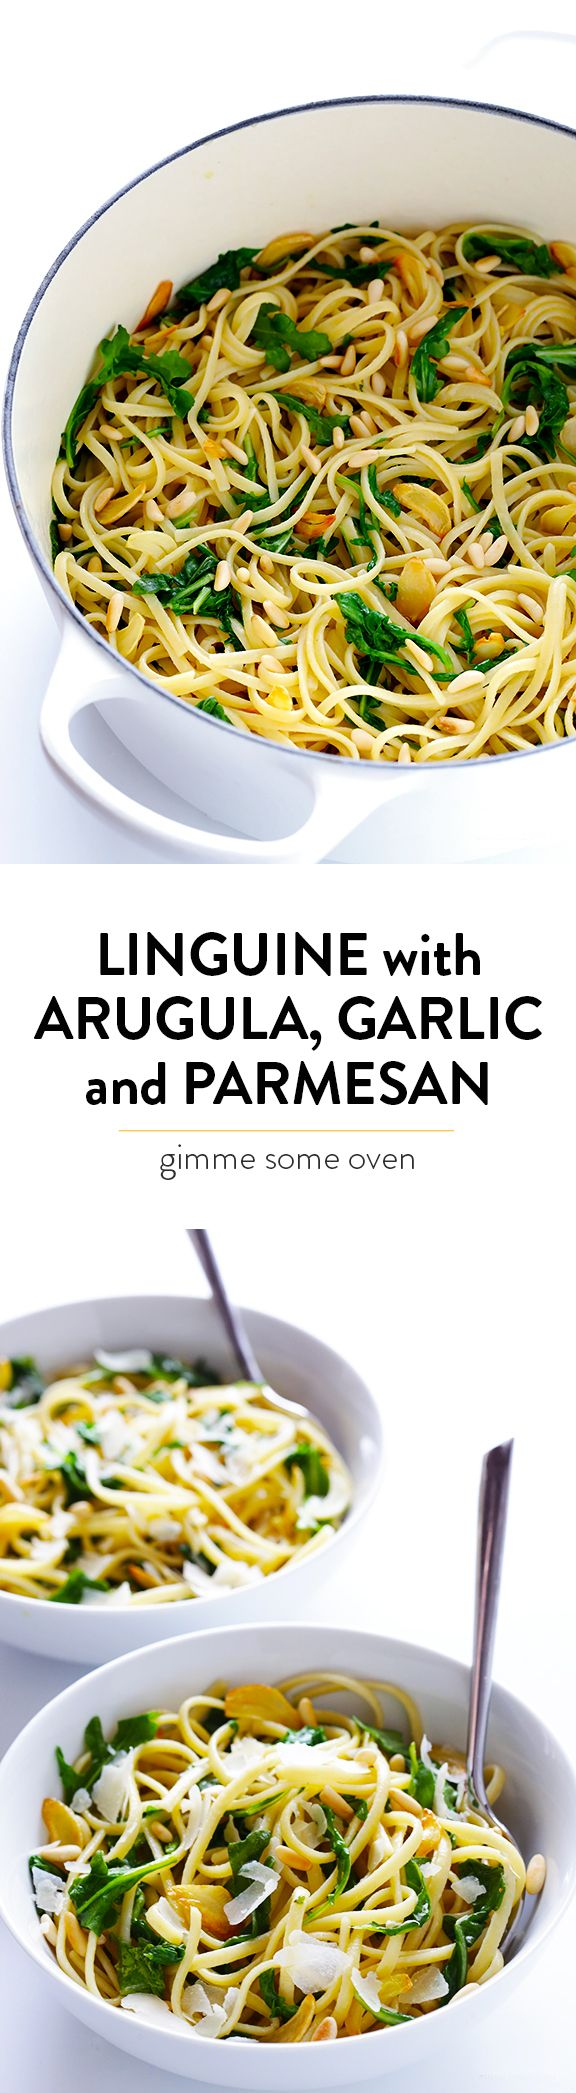 This 5-Ingredient Linguine with Arugula, Garlic and Parmesan recipe is super quick and easy to make, and full of the best flavors! | gimmesomeoven.com